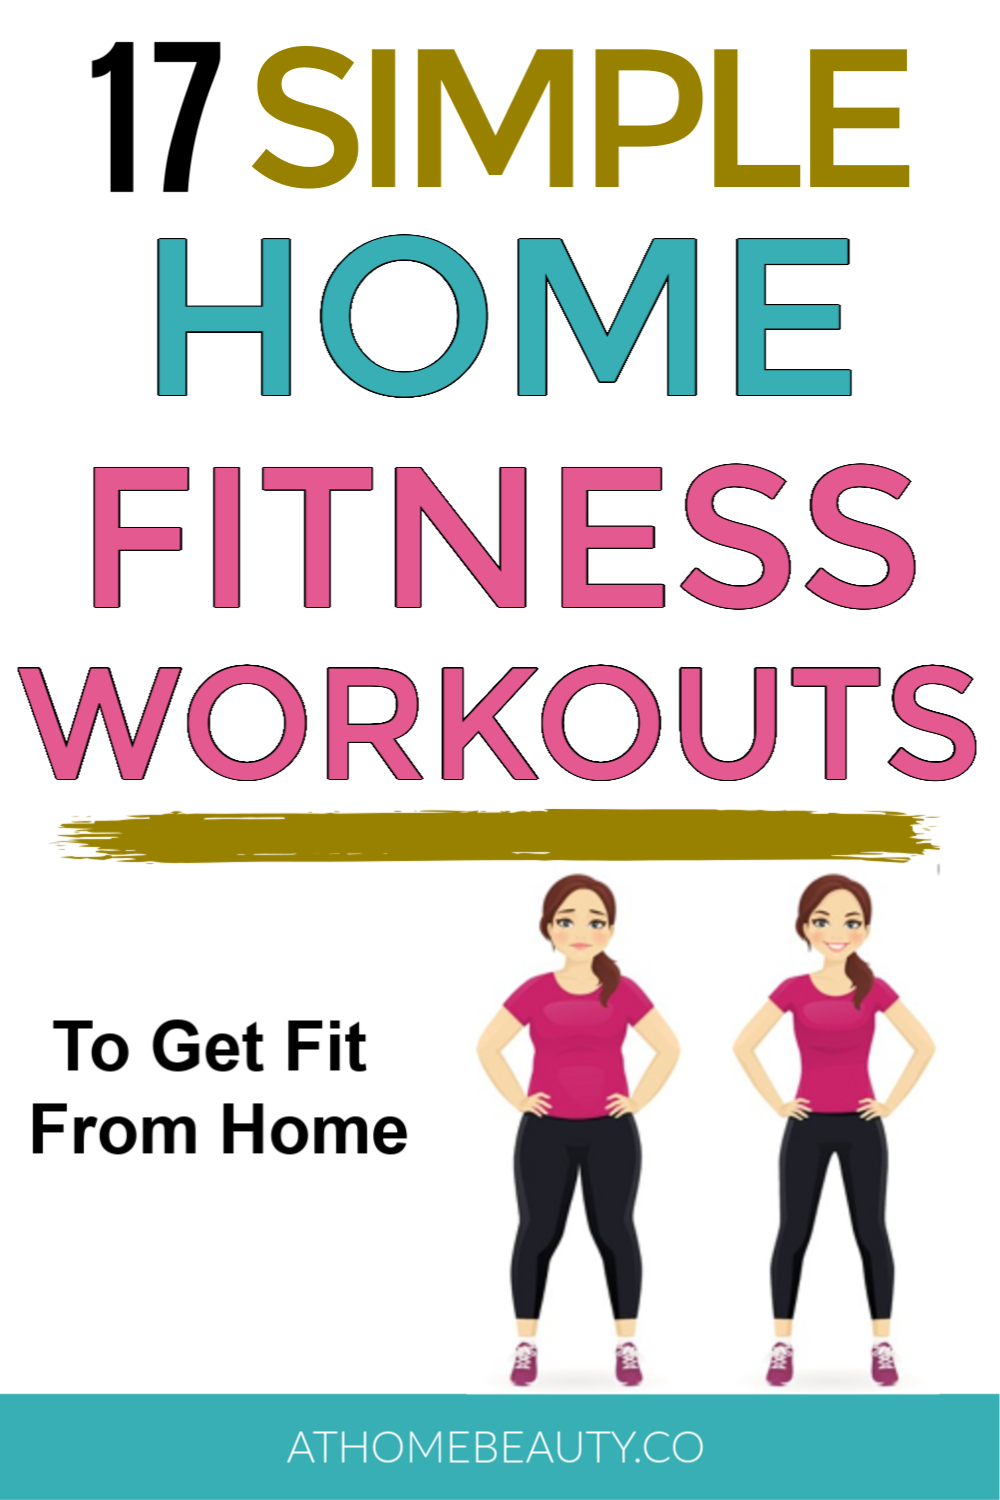 17 Simple Home Fitness Workouts